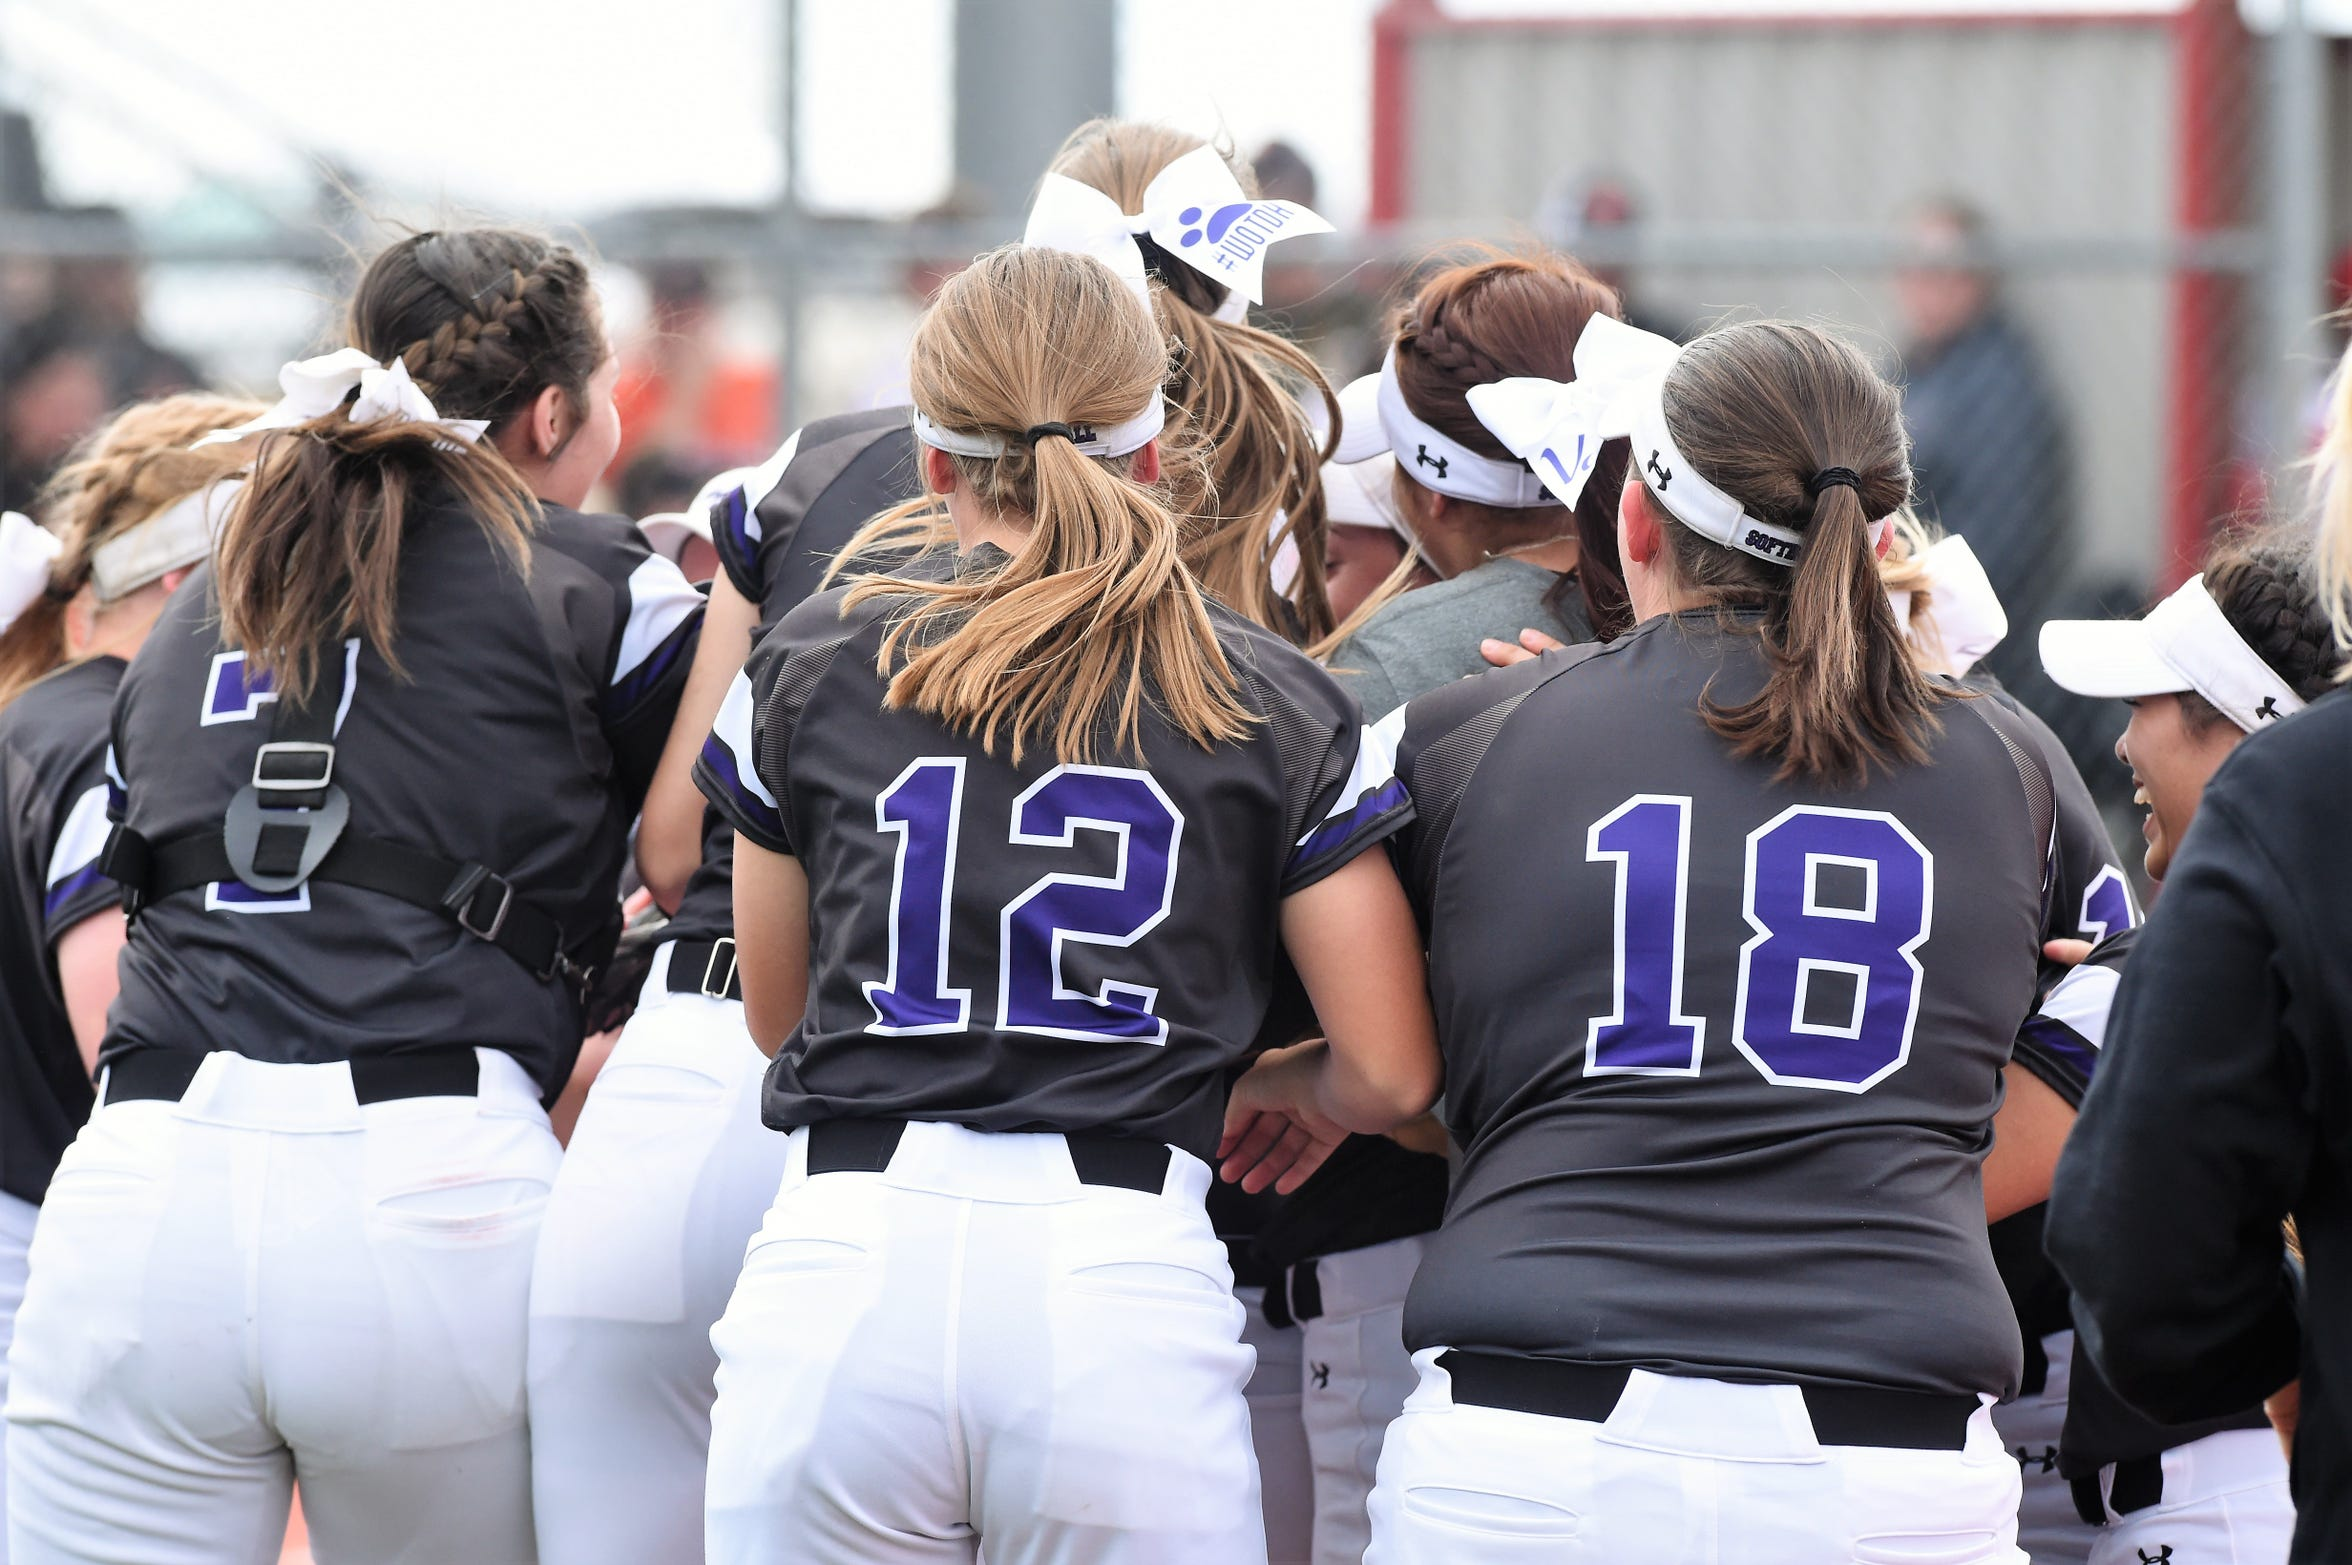 The Wylie softball team celebrates it's 2-1 series win against Lubbock Coronado in the Region I-5A quarterfinals in Hermleigh. The Lady Bulldogs won Games 2 and 3 to take the series and reach the region semifinals in their first year competing in 5A.